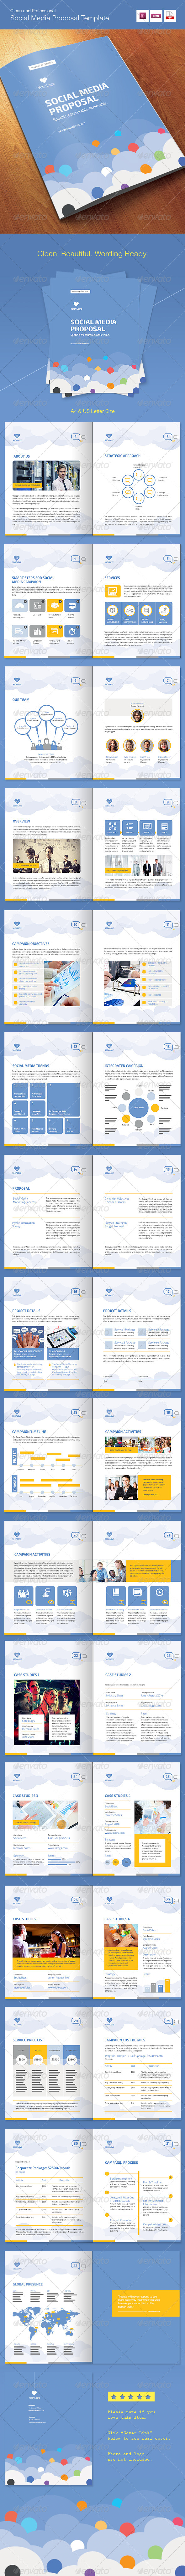 Social Media Proposal Template By Afahmy GraphicRiver - Social media proposal template